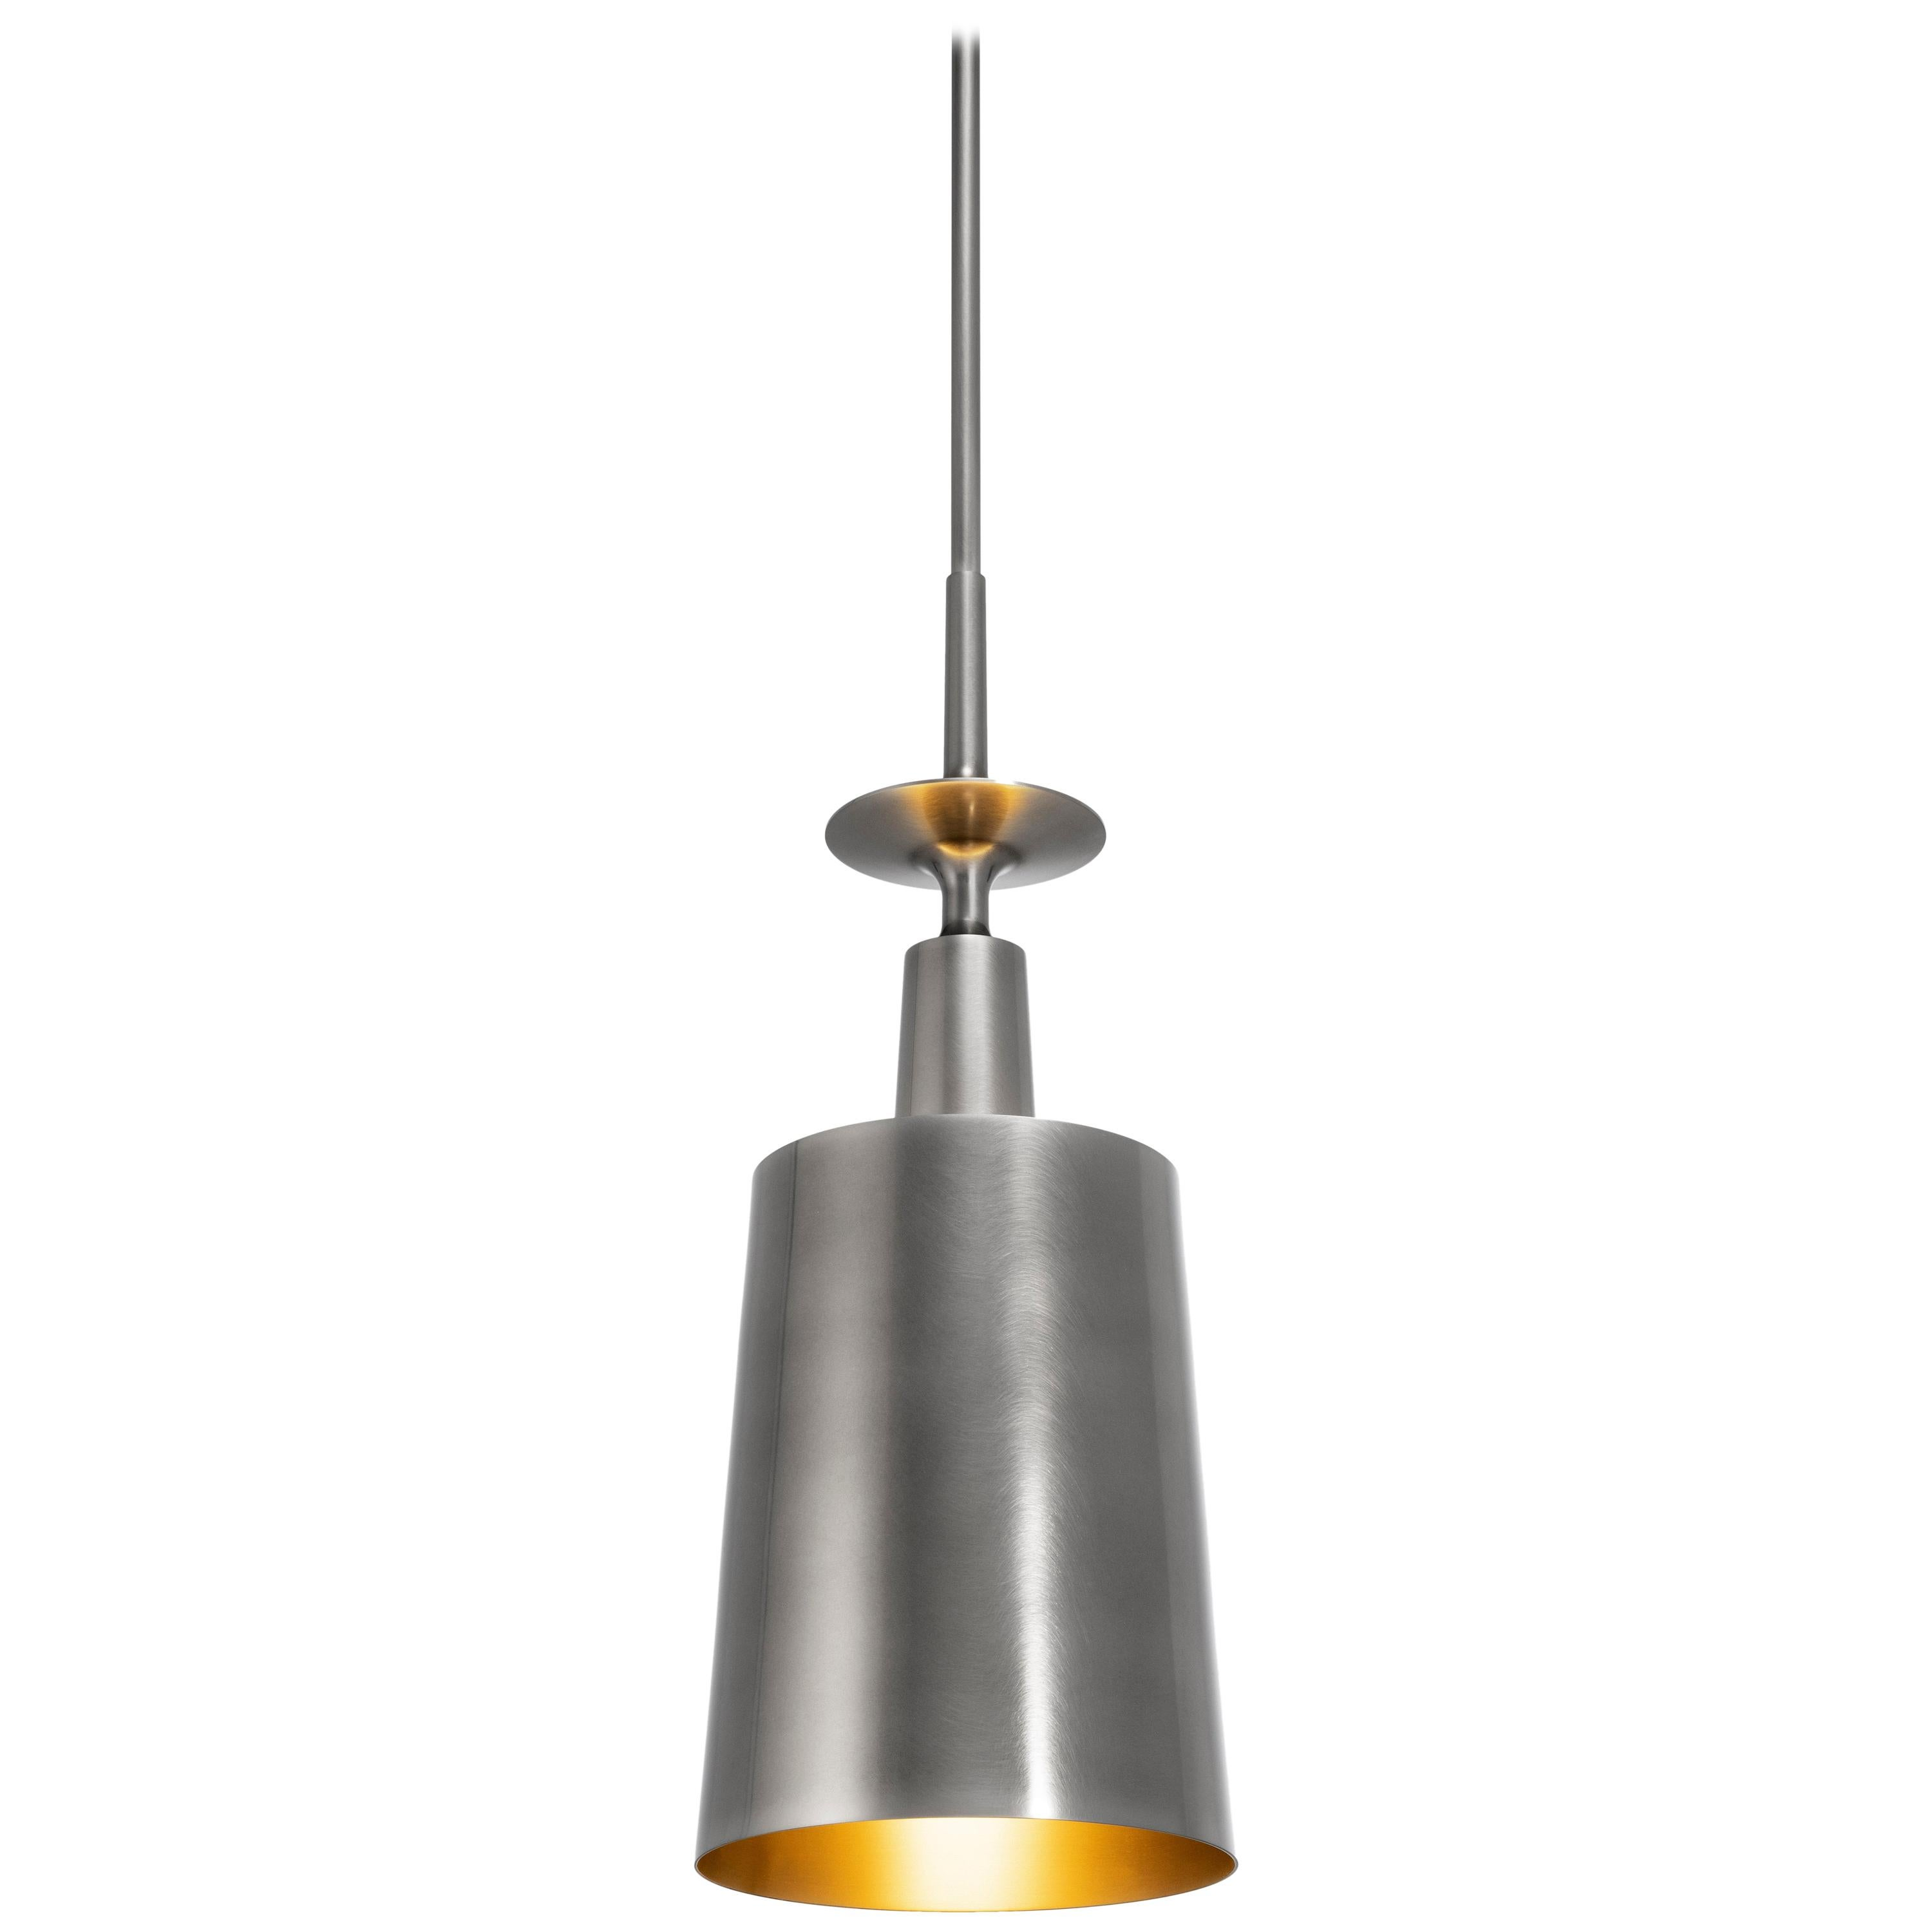 HOLLY HUNT Summit Pendant with Aged Nickel and Golden Bronze Interior Finish